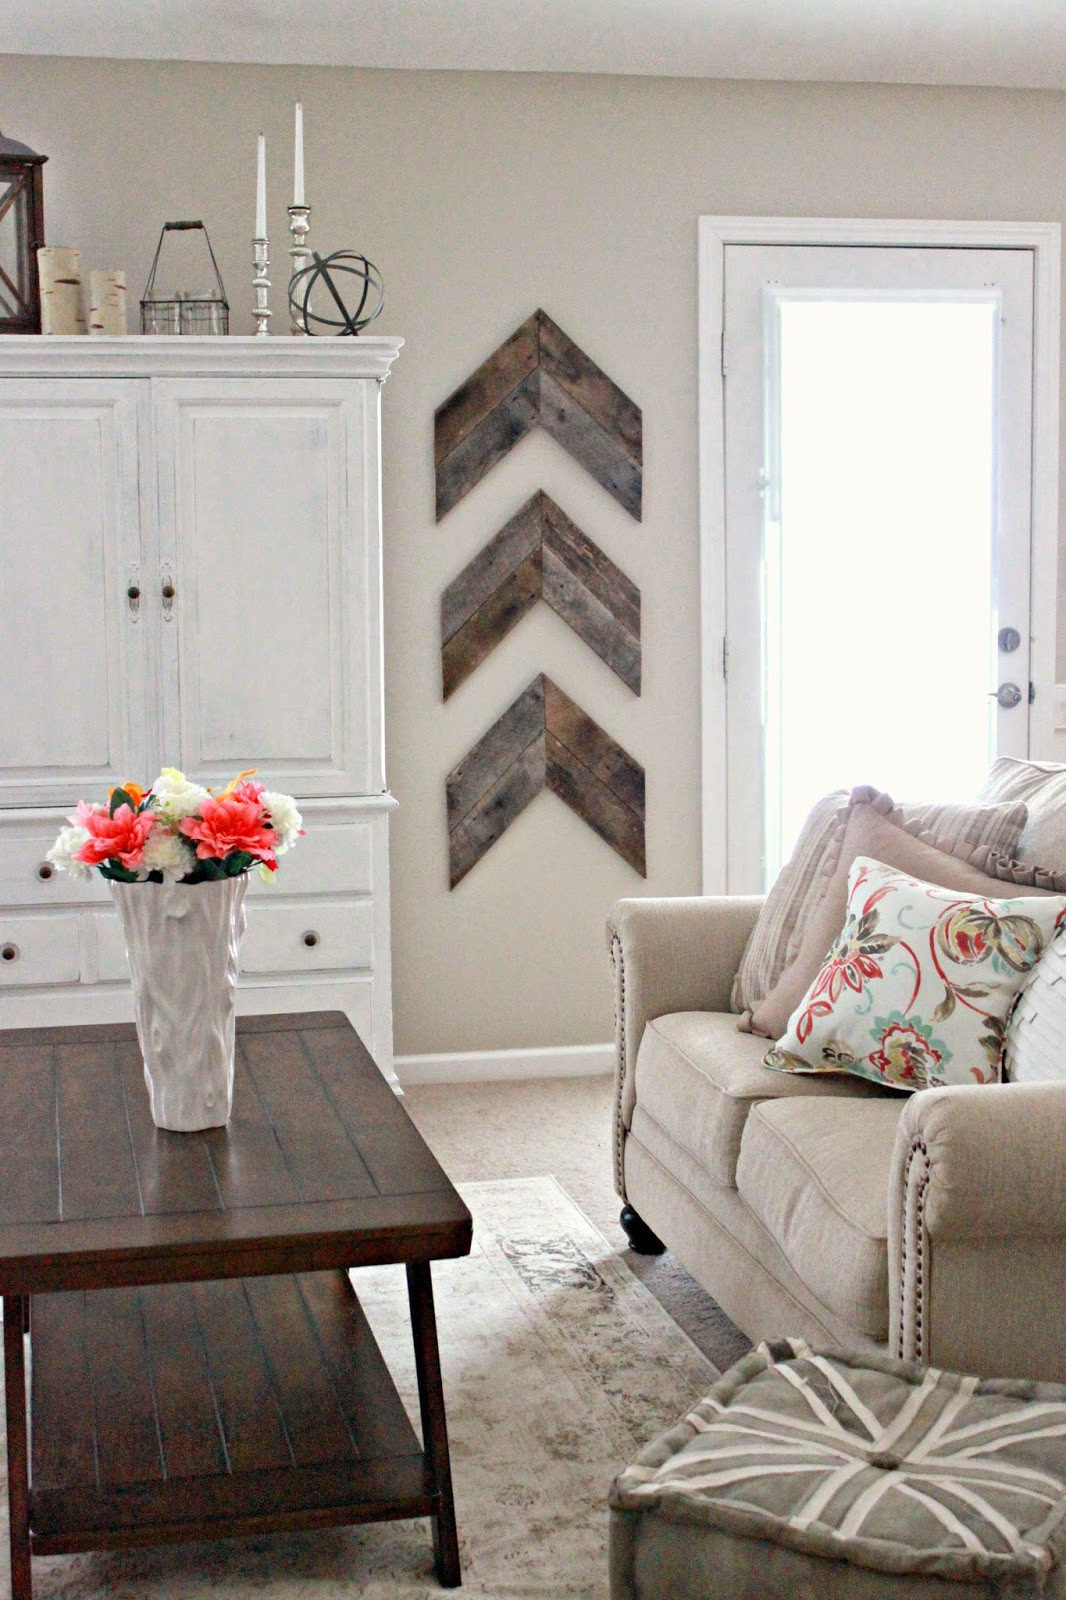 Diy Living Room Ideas  15 Striking Ways to Decorate with Arrows